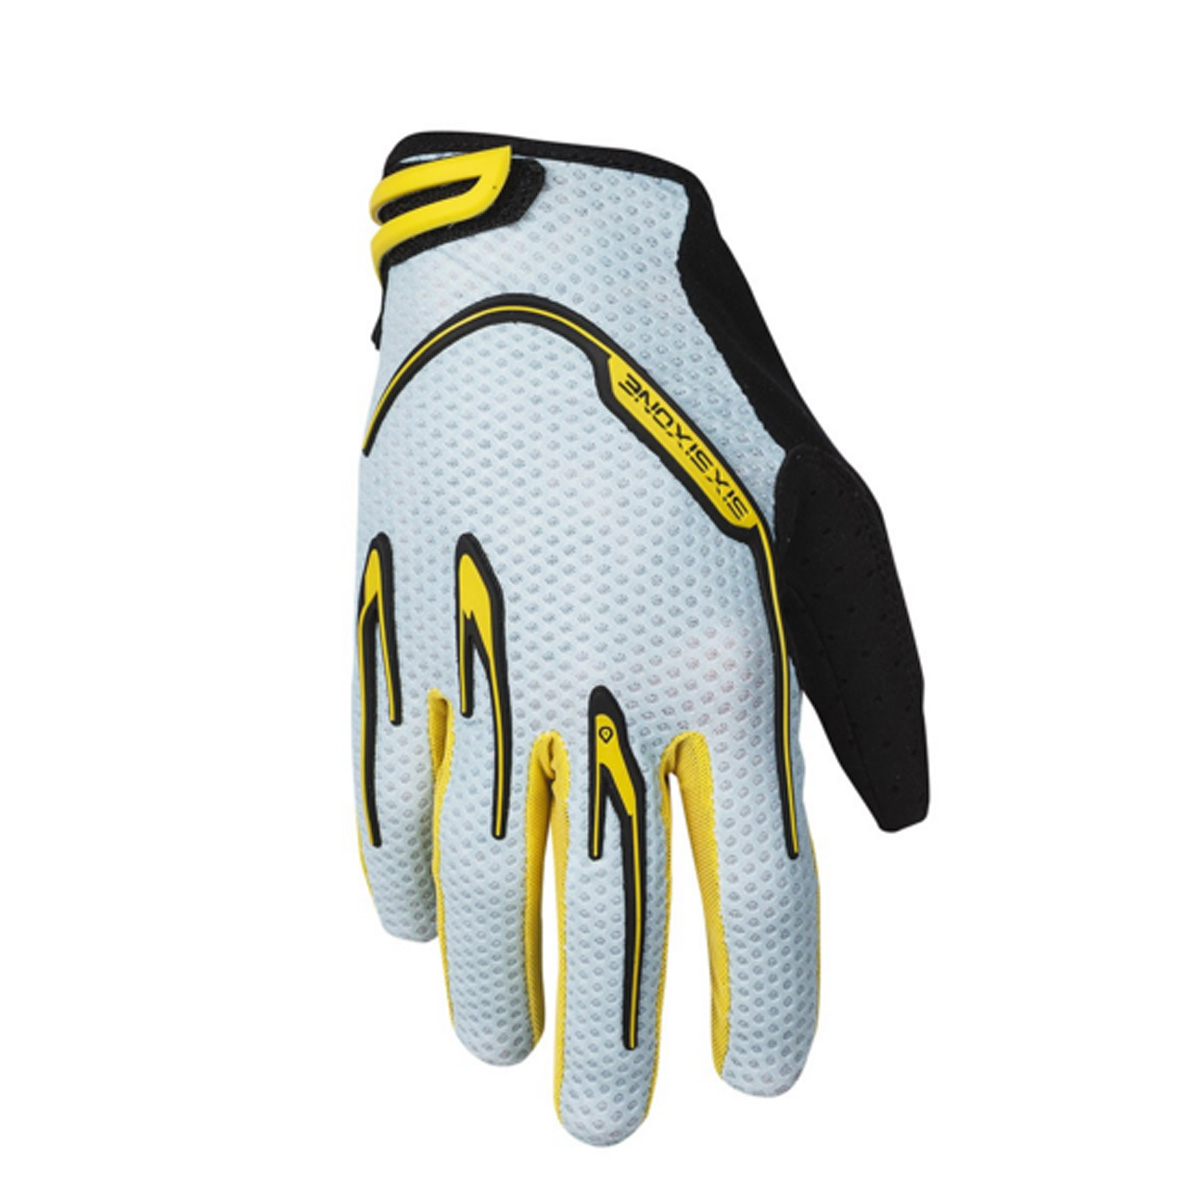 SixSixOne 2016 Men's Recon Full Finger Mountain Cycling Gloves - 6983